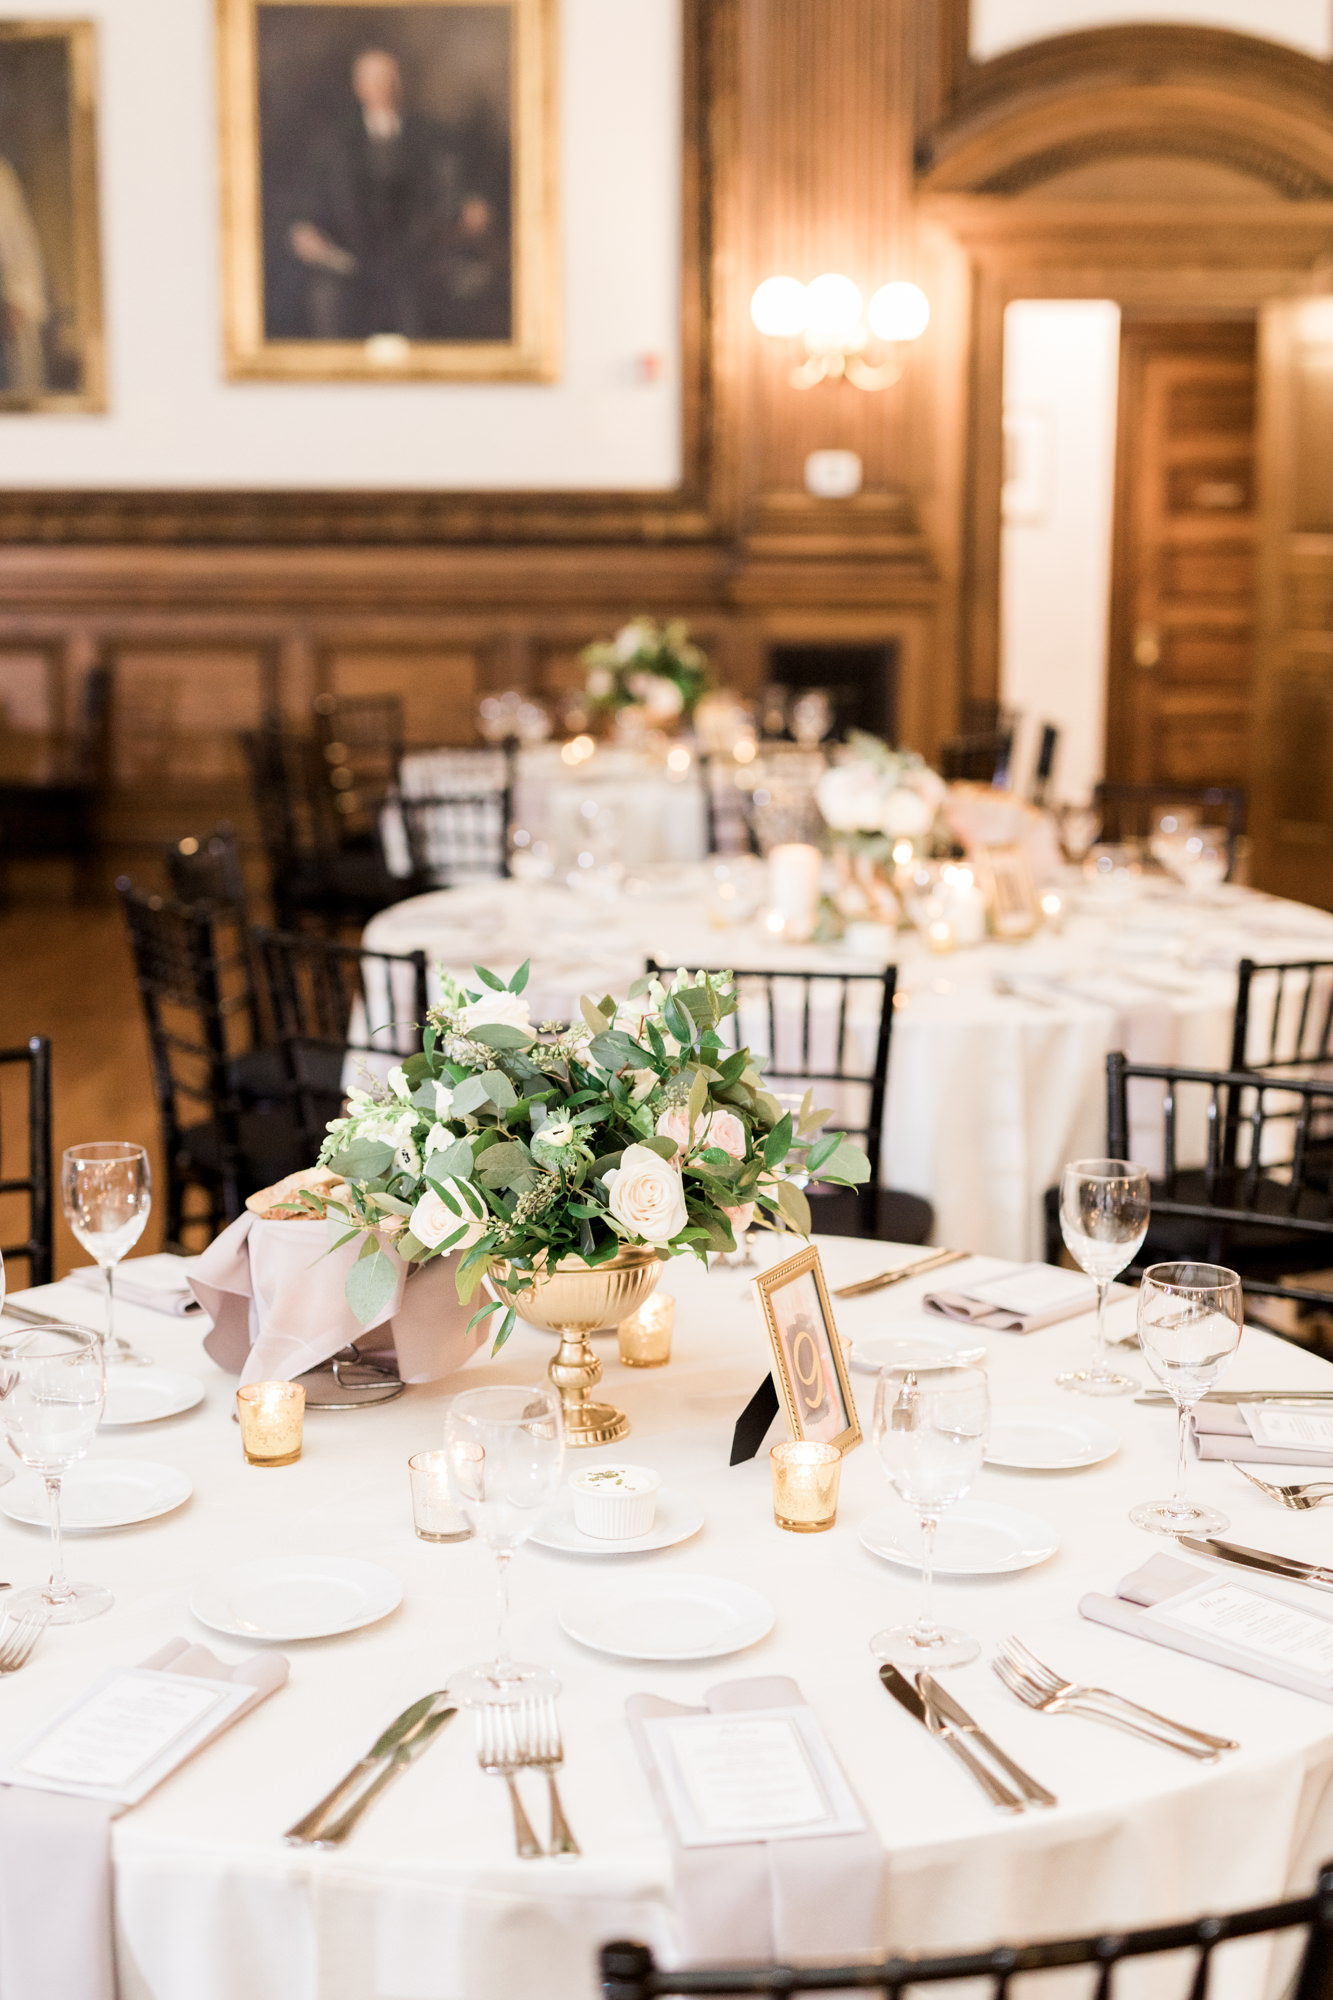 haley-richter-photography-autumn-college-of-physicians-wedding-philadelphia--296